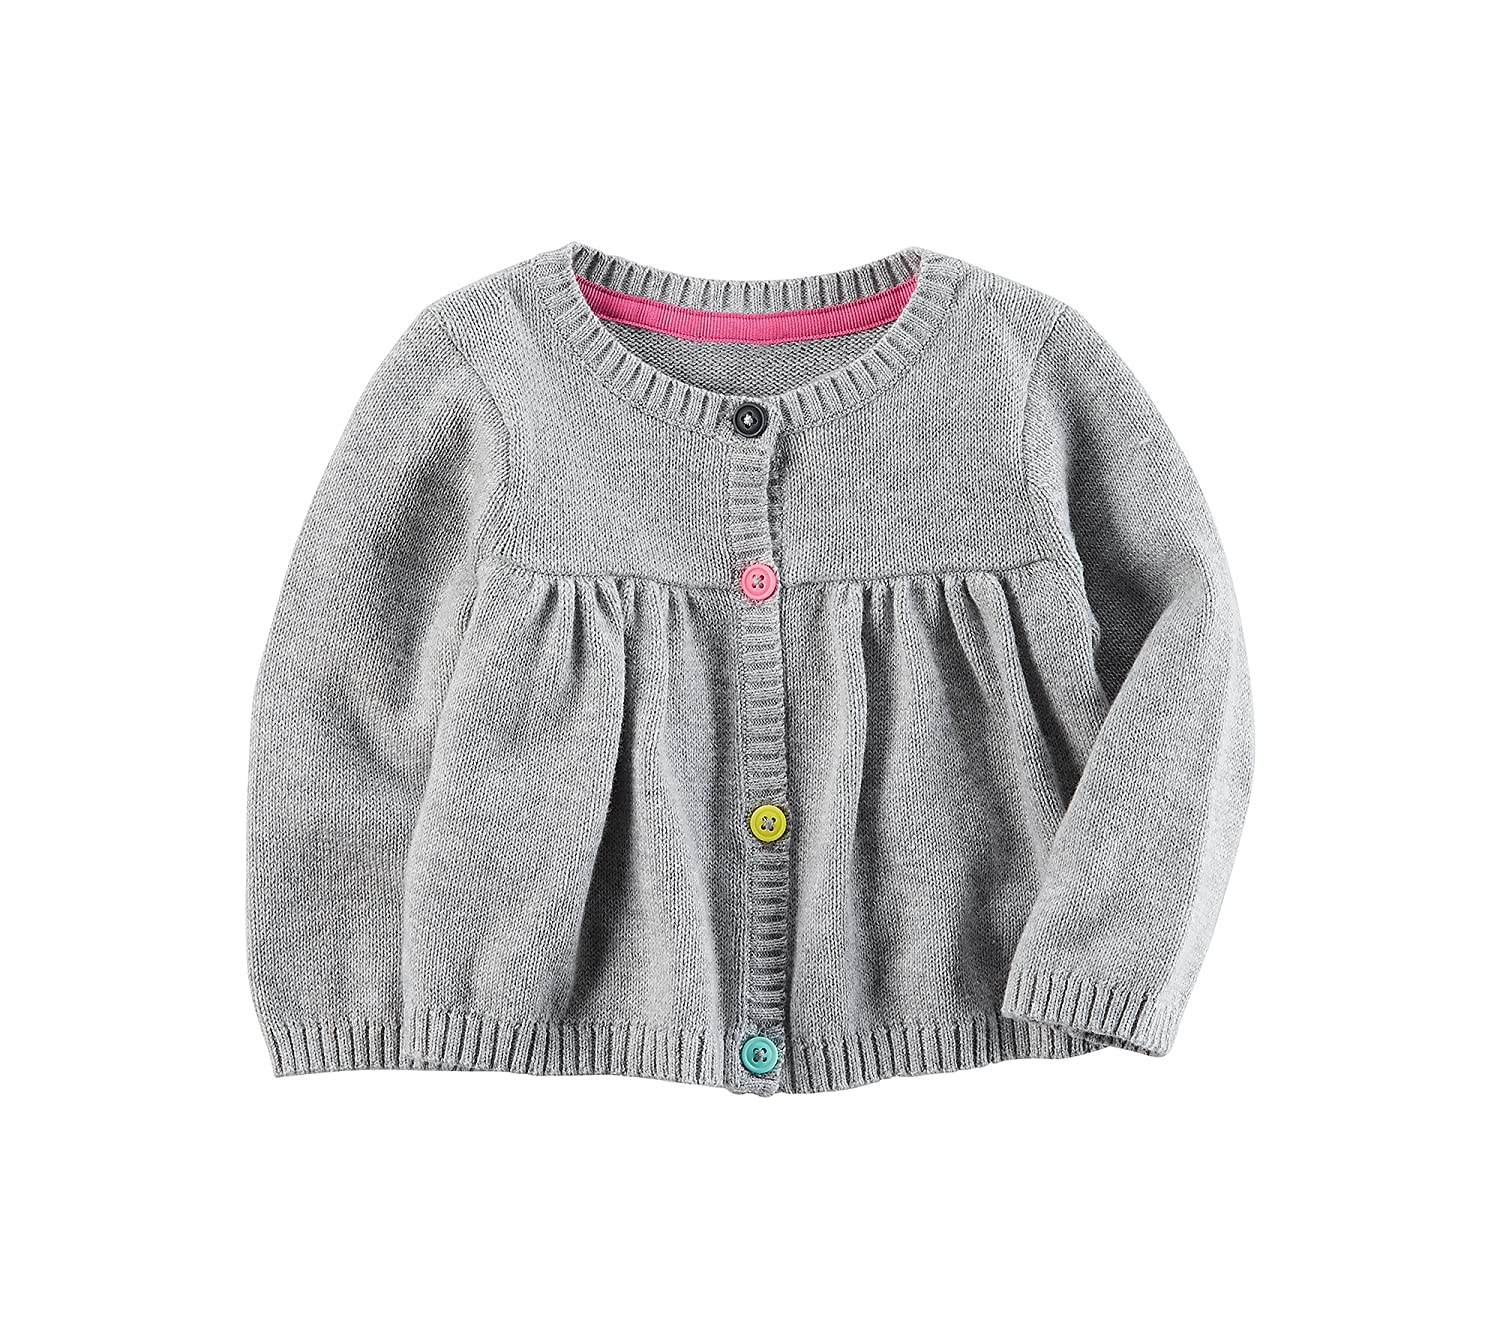 Carters Baby Girls Button Front Knit Cardigan